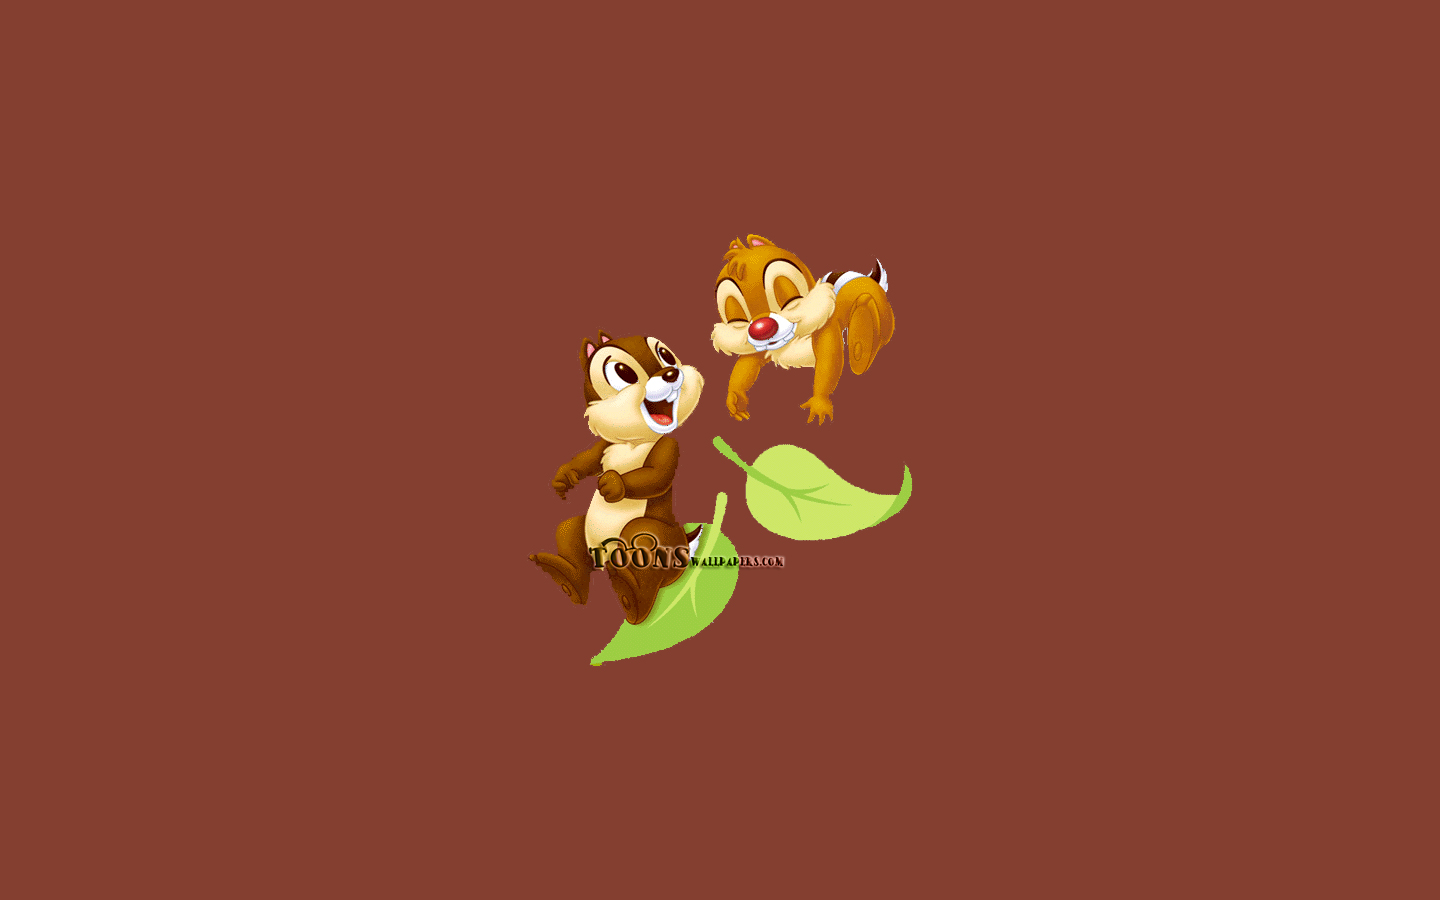 Mobile Wallpaper Chip And Dale Icon 25127109 Fanpop 1440x900